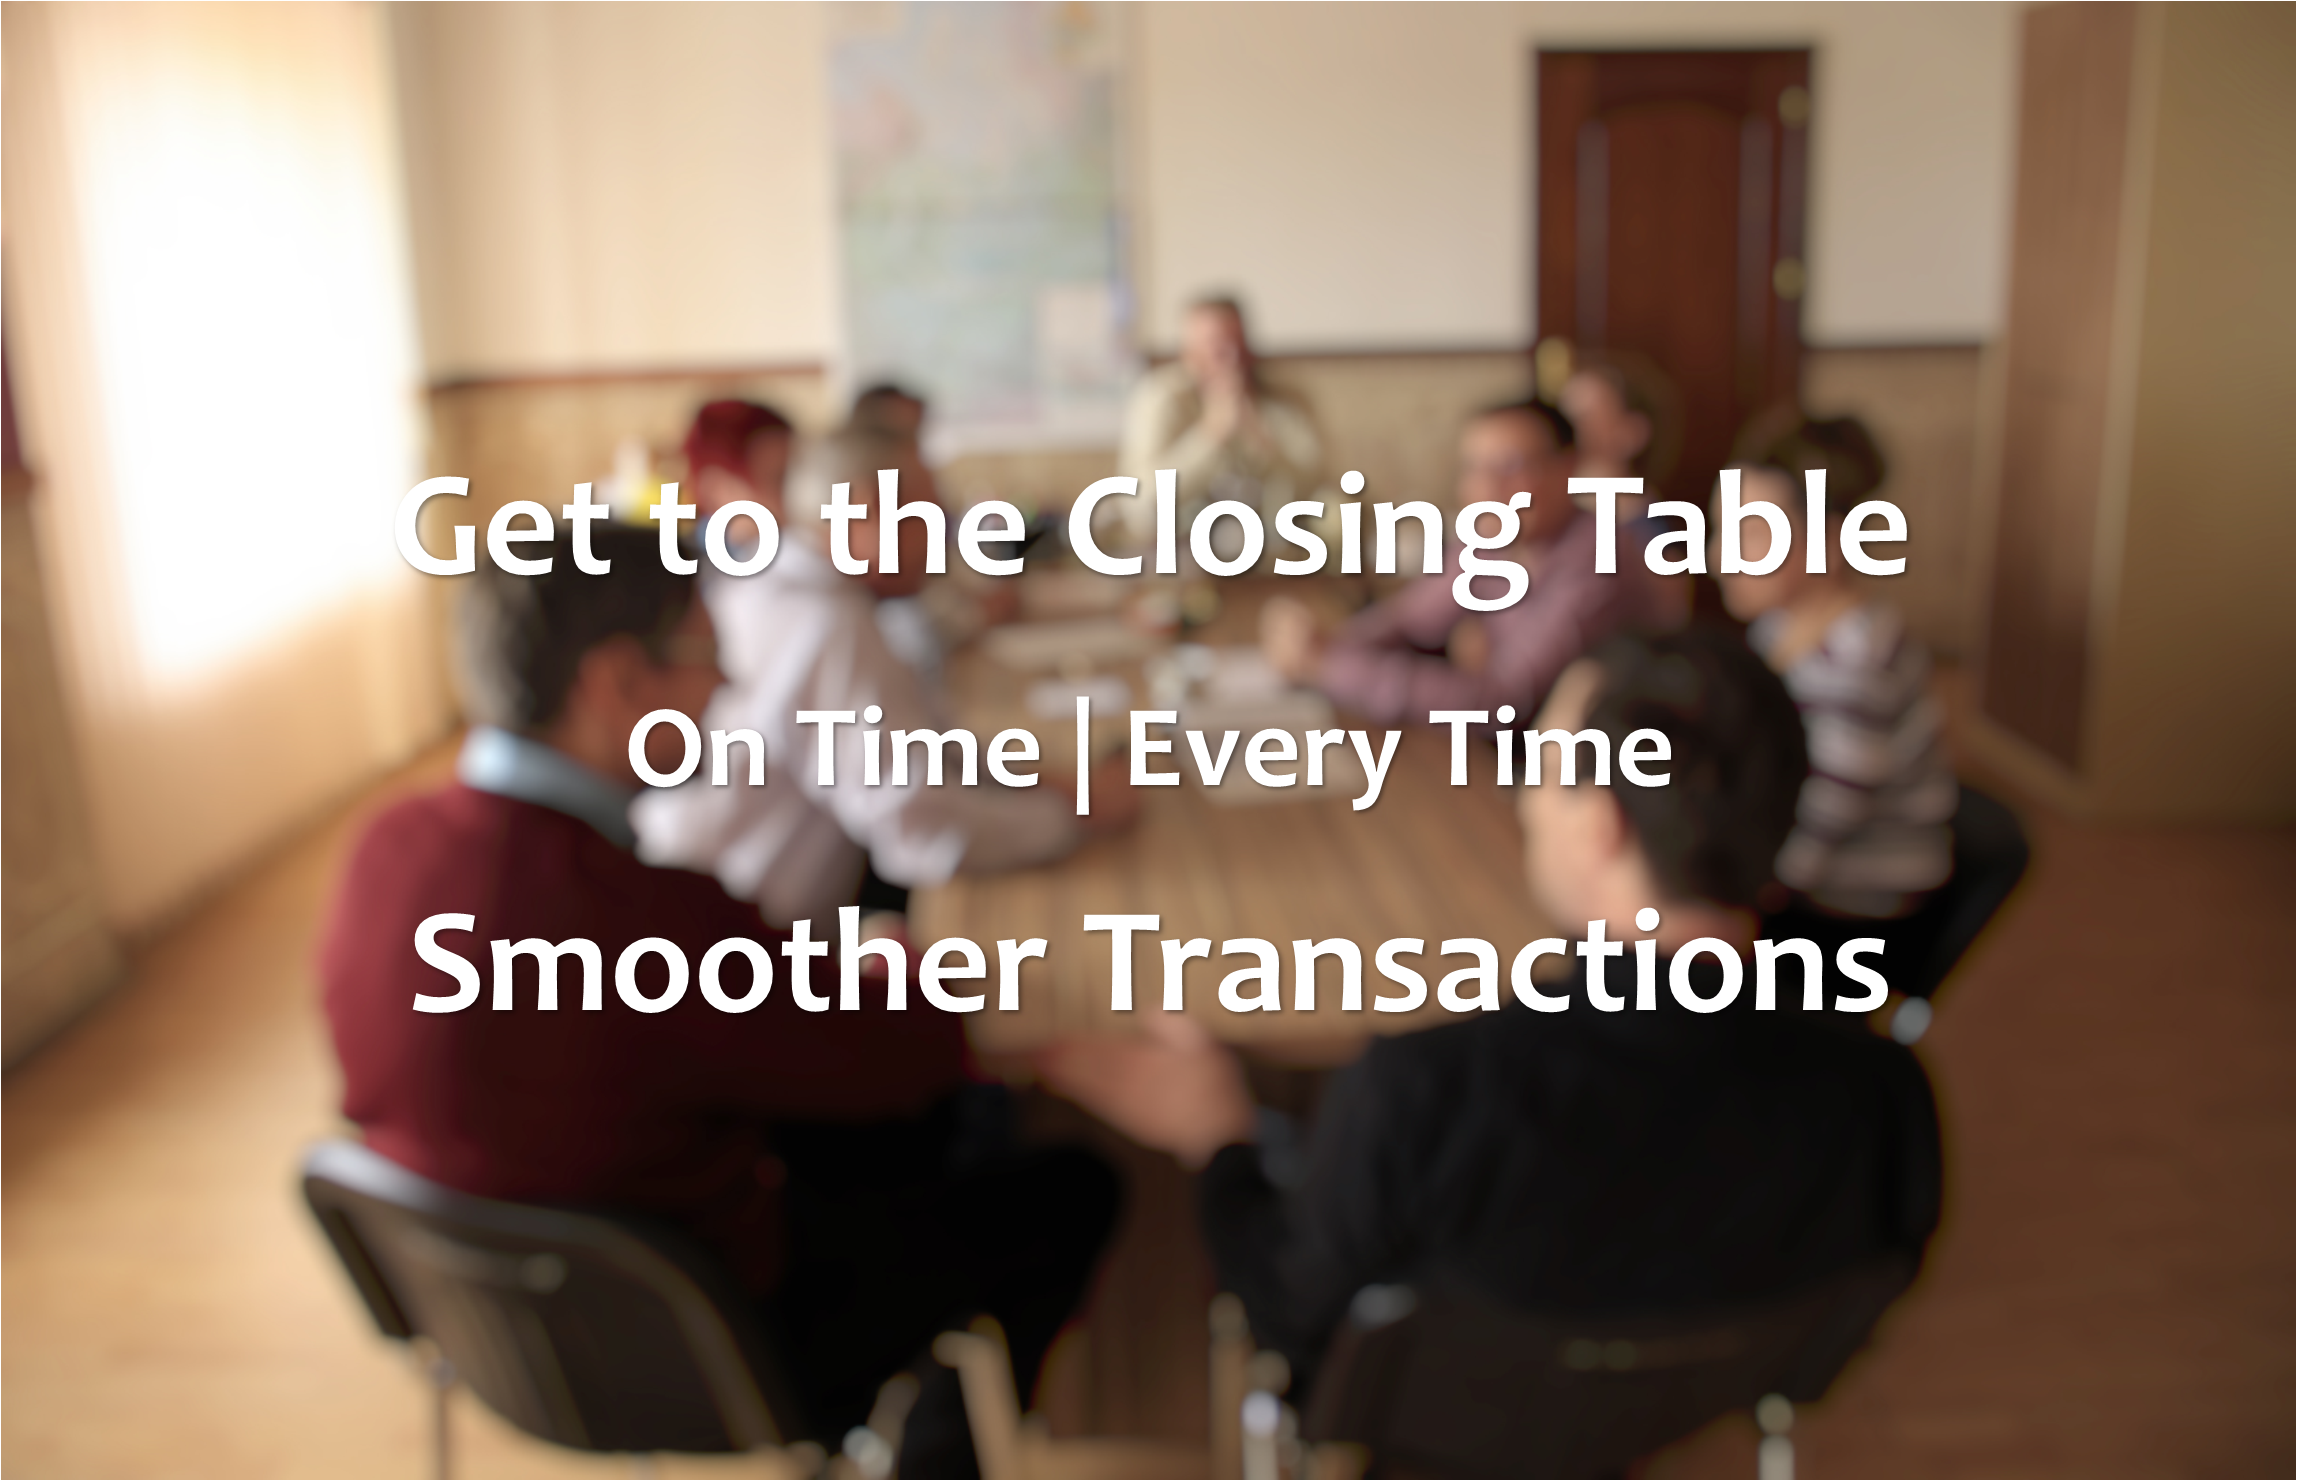 smoother transactions graphic